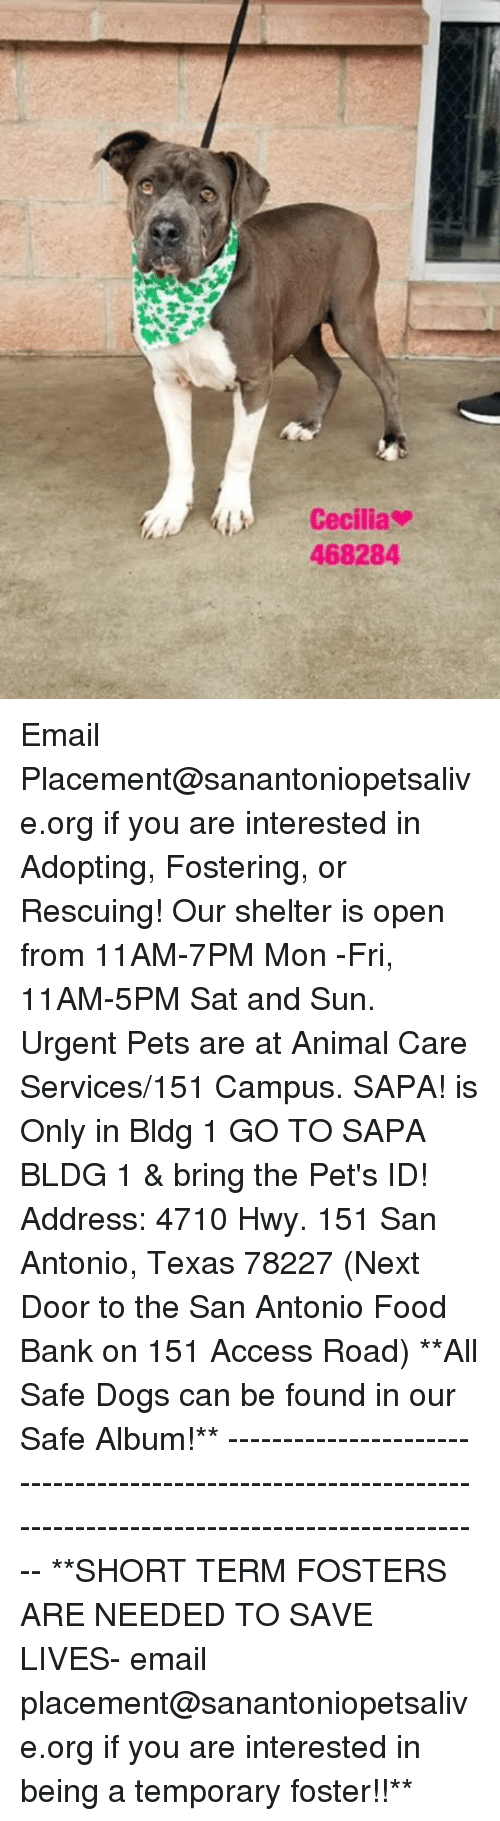 Dogs, Food, and Memes: LCecilia  468284 Email Placement@sanantoniopetsalive.org if you are interested in Adopting, Fostering, or Rescuing!  Our shelter is open from 11AM-7PM Mon -Fri, 11AM-5PM Sat and Sun.  Urgent Pets are at Animal Care Services/151 Campus. SAPA! is Only in Bldg 1 GO TO SAPA BLDG 1 & bring the Pet's ID! Address: 4710 Hwy. 151 San Antonio, Texas 78227 (Next Door to the San Antonio Food Bank on 151 Access Road)  **All Safe Dogs can be found in our Safe Album!** ---------------------------------------------------------------------------------------------------------- **SHORT TERM FOSTERS ARE NEEDED TO SAVE LIVES- email placement@sanantoniopetsalive.org if you are interested in being a temporary foster!!**